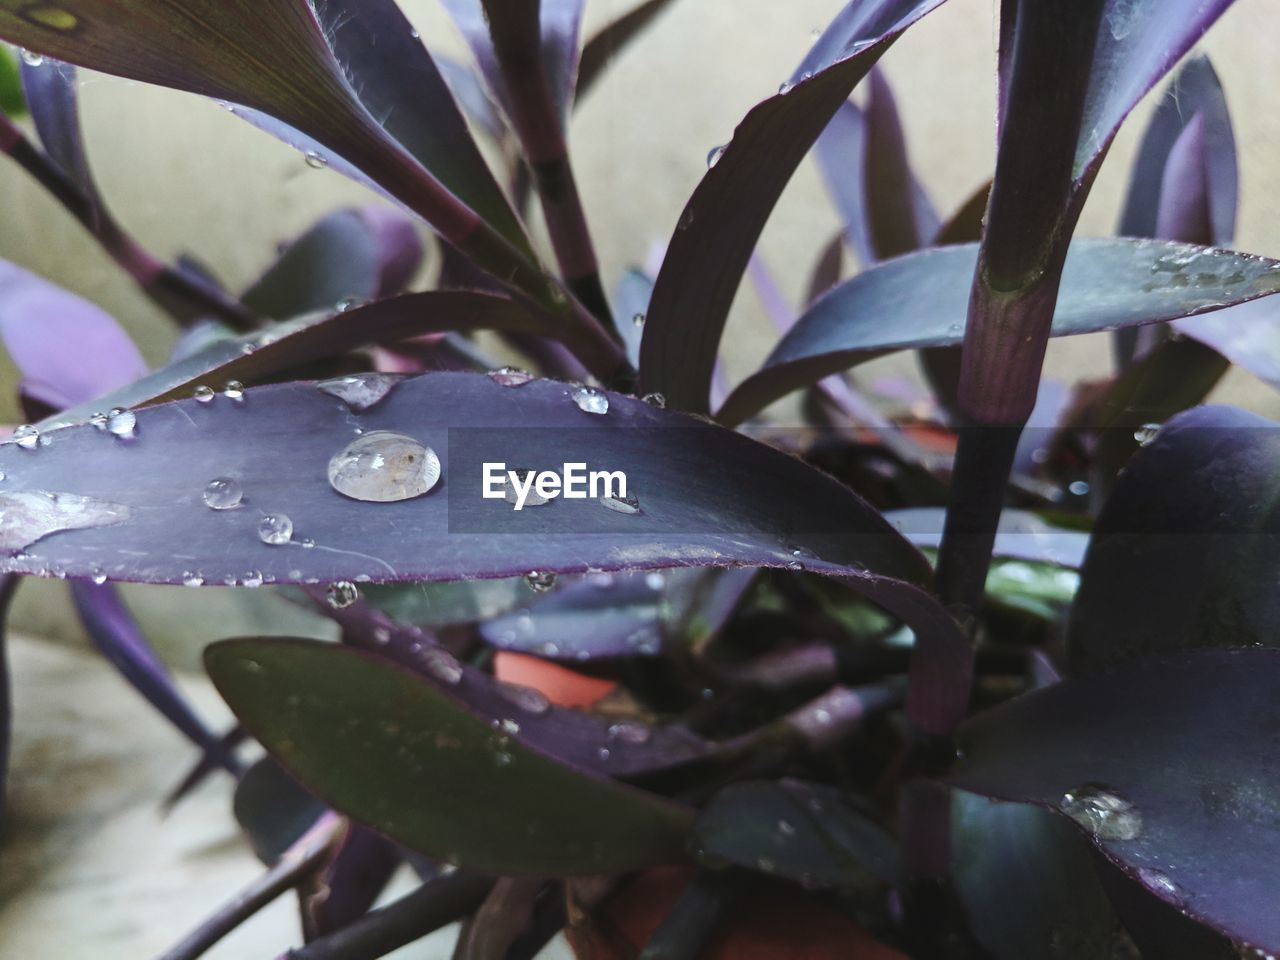 drop, water, wet, growth, plant, plant part, leaf, close-up, beauty in nature, nature, no people, day, freshness, selective focus, outdoors, rain, purity, vulnerability, raindrop, dew, leaves, blade of grass